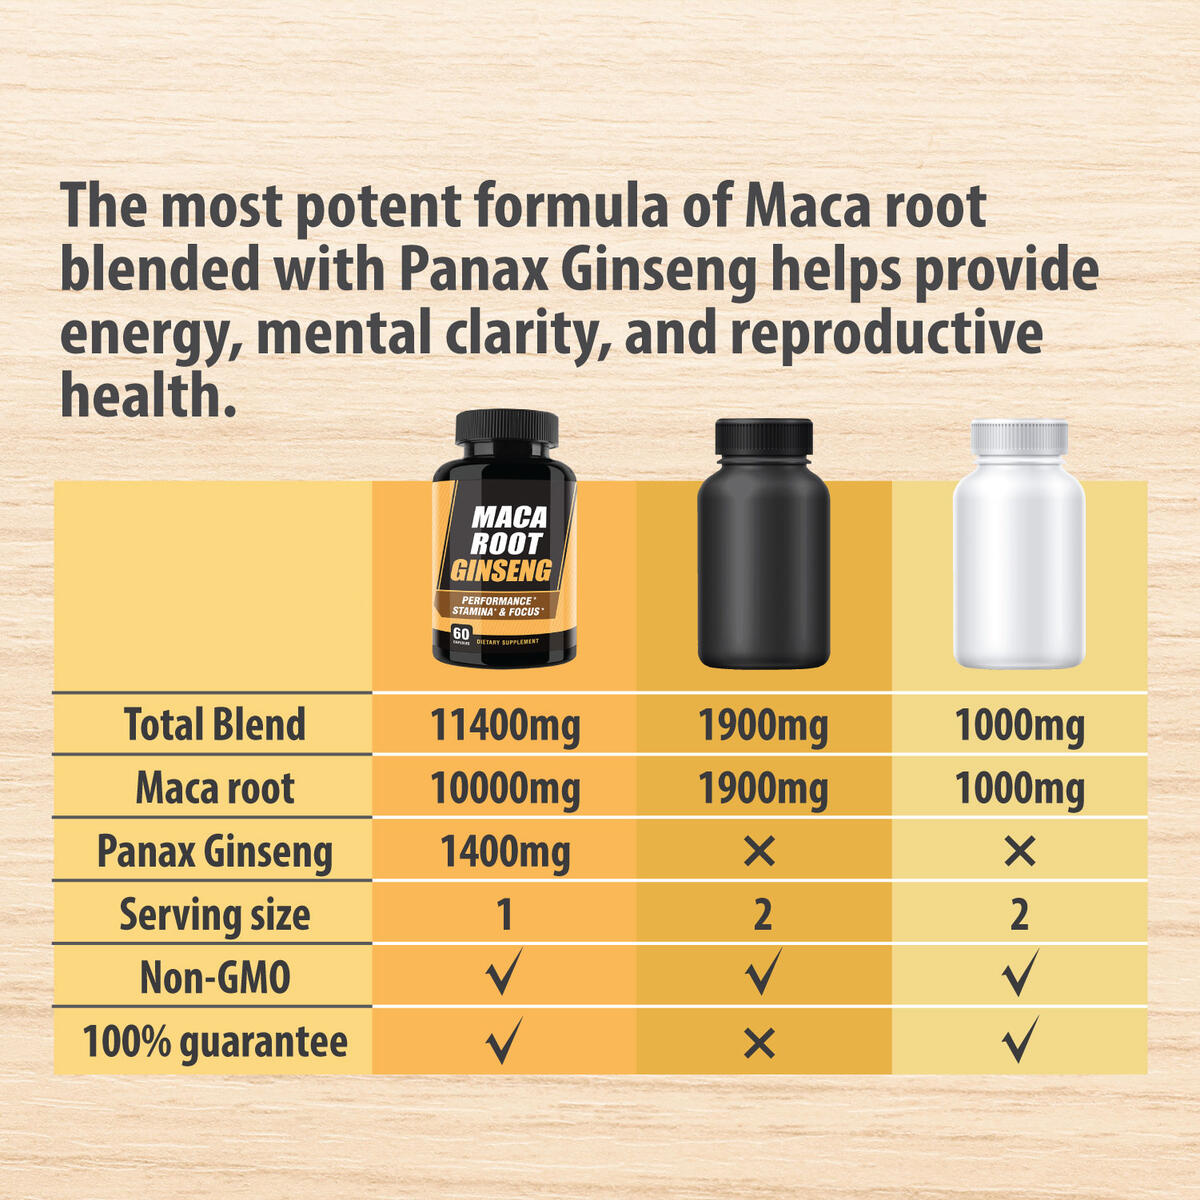 10000mg Organic Black Maca Root Capsule + 1400mg Korean Red Panax Ginseng Extract for Reproductive Health, Natural Energy & Maca Peruana, Peruvian Maca Capsule, Korean Red Ginseng Capsule, 2 Months